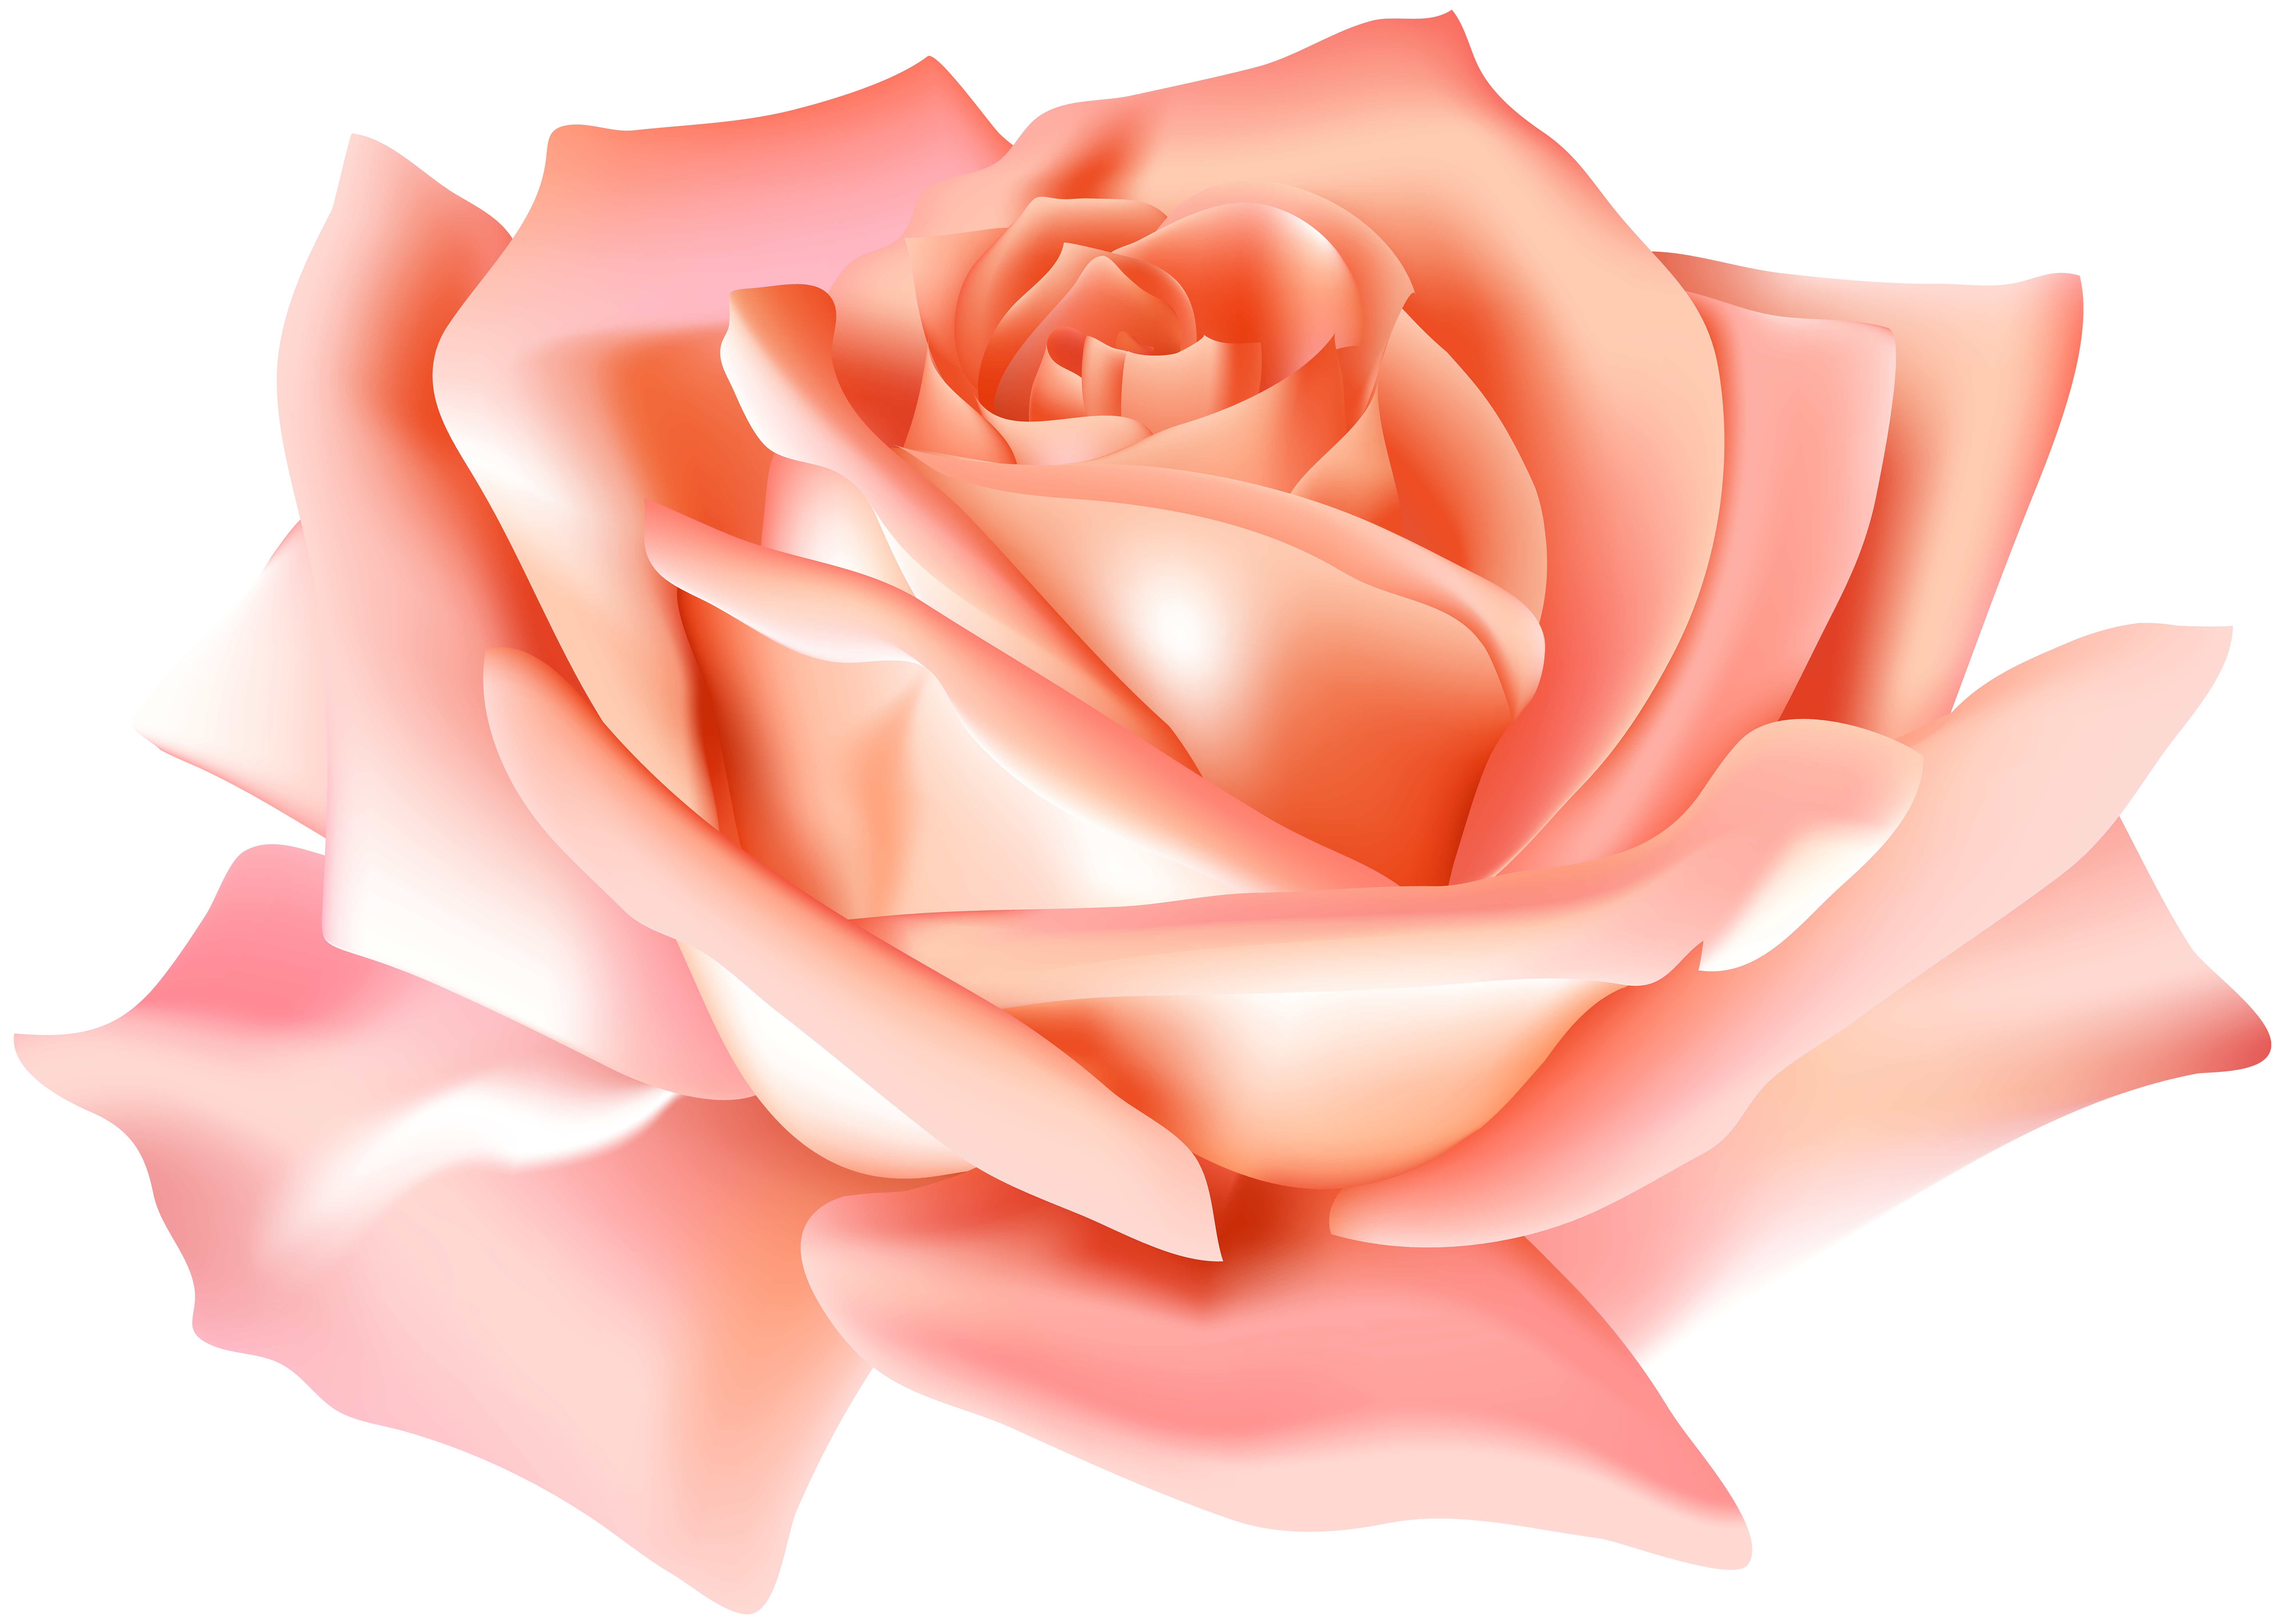 Clipart roses peach rose. Flower png clip art